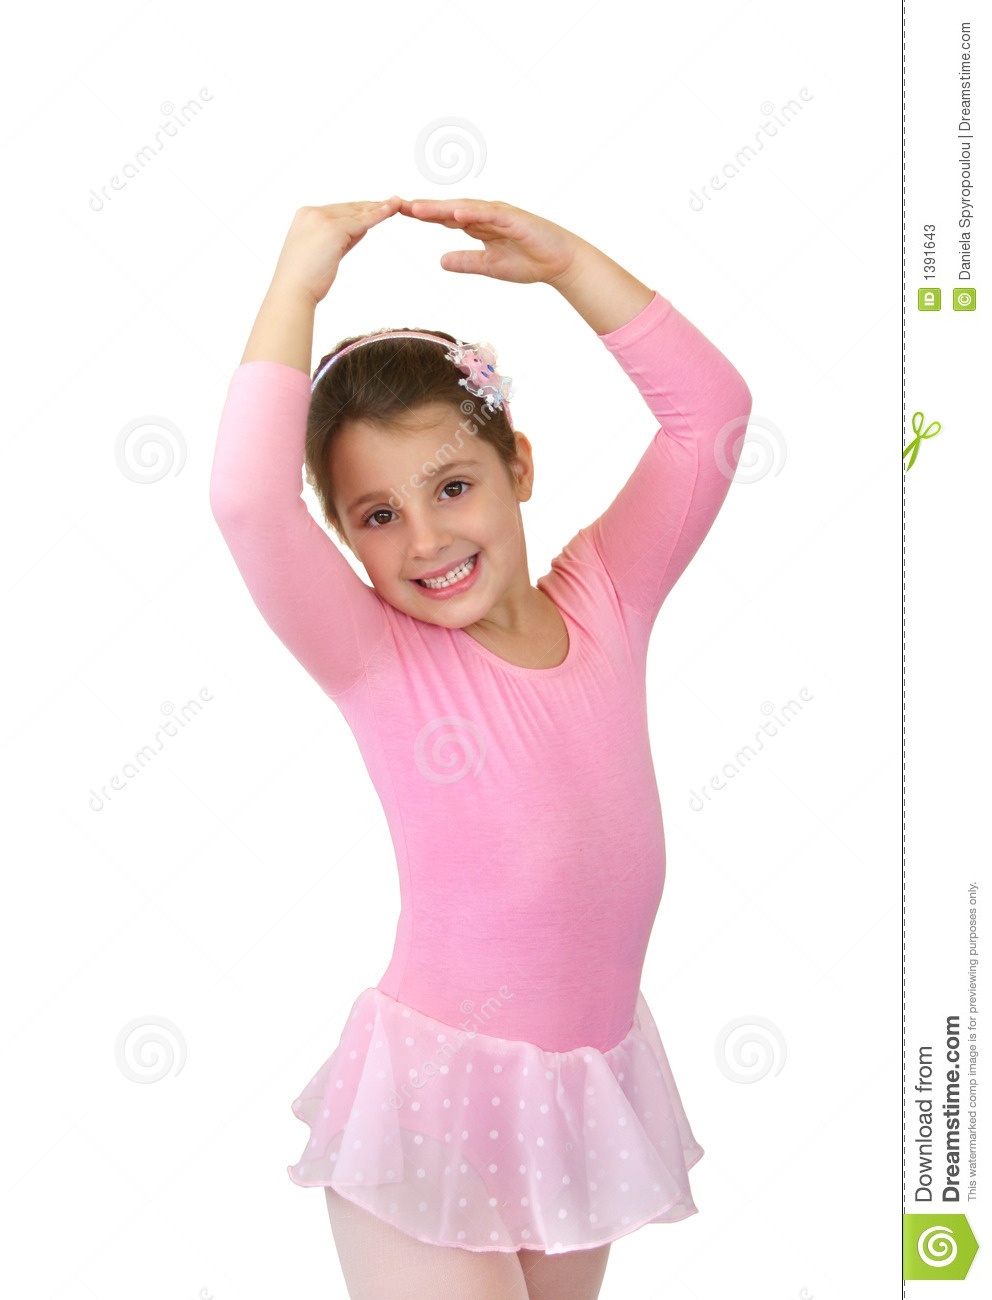 Http Www Dreamstime Com Stock Photos Little Ballerina Image1391643